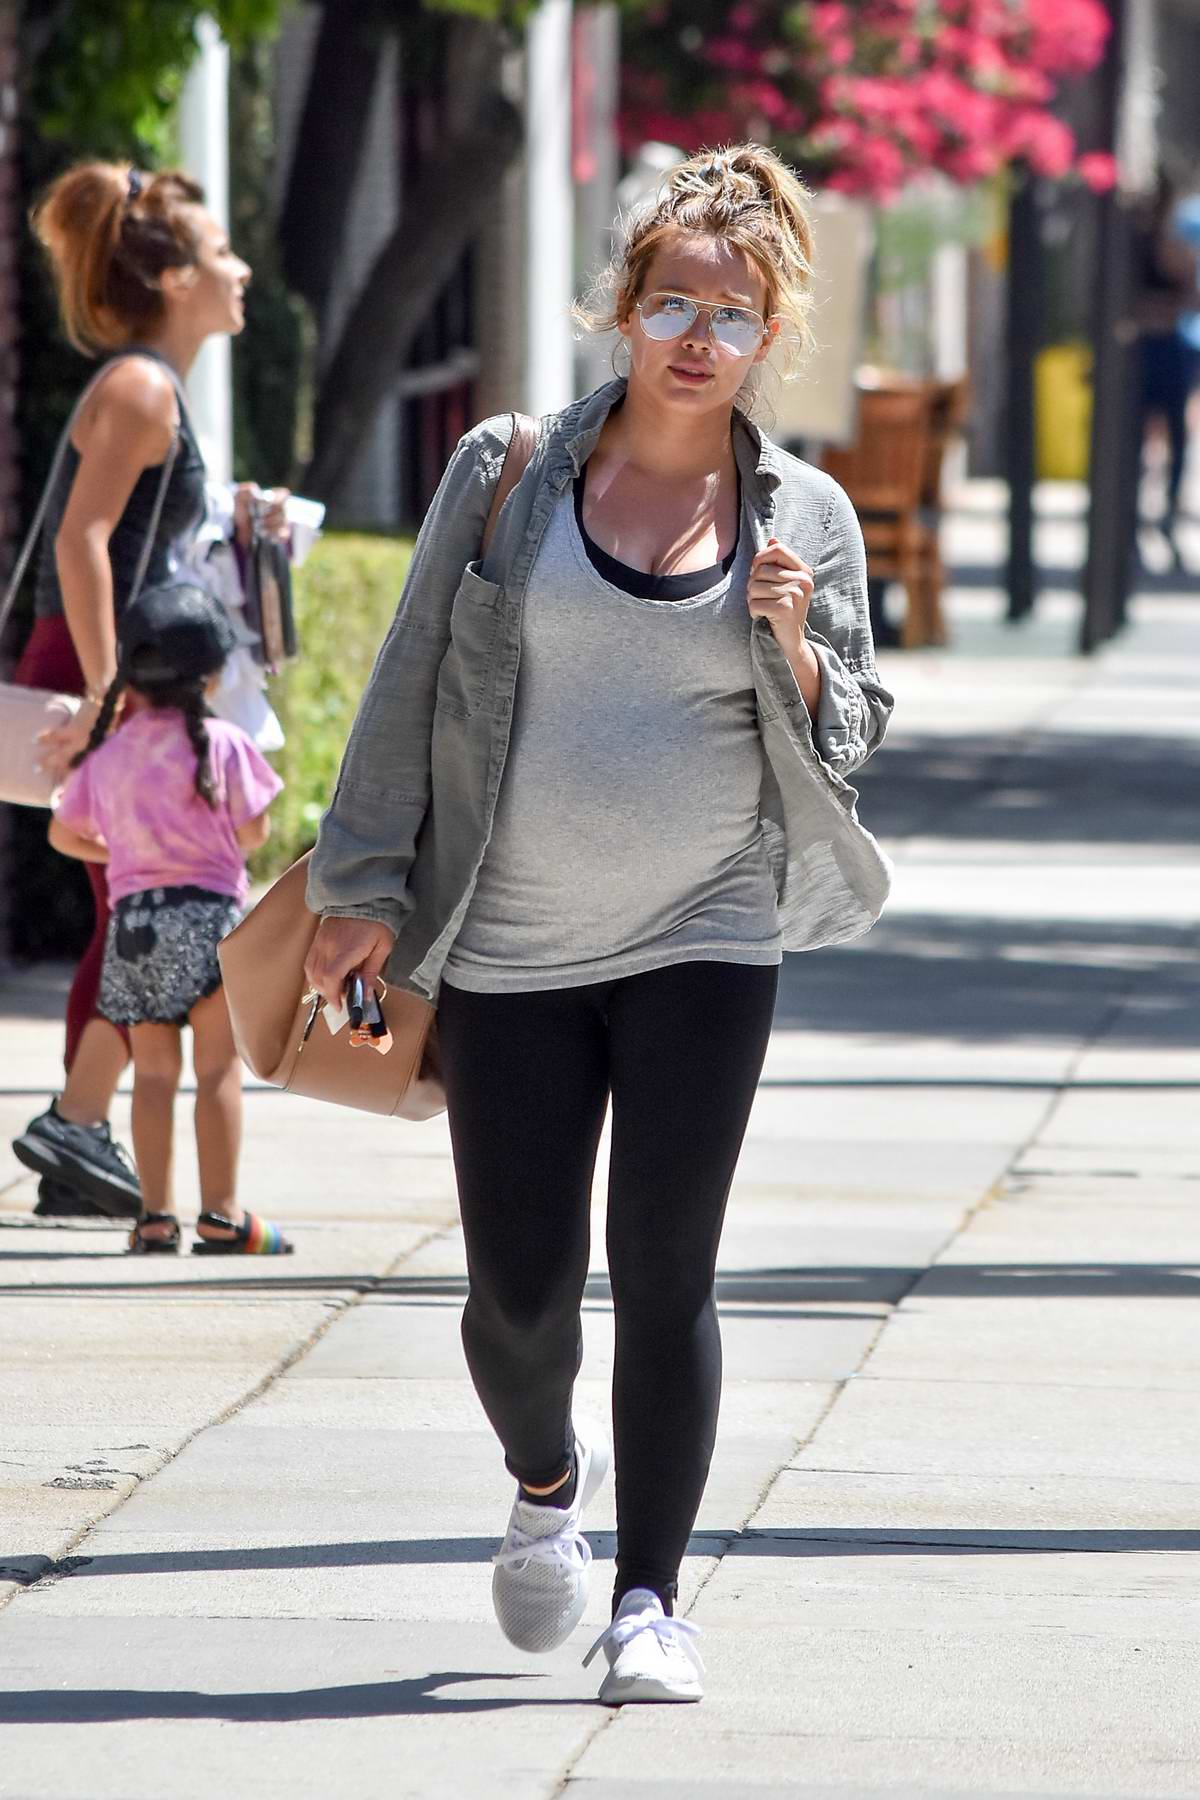 Hilary Duff rocks denim jacket over a grey tank top with black leggings as she leaves the gym in Los Angeles